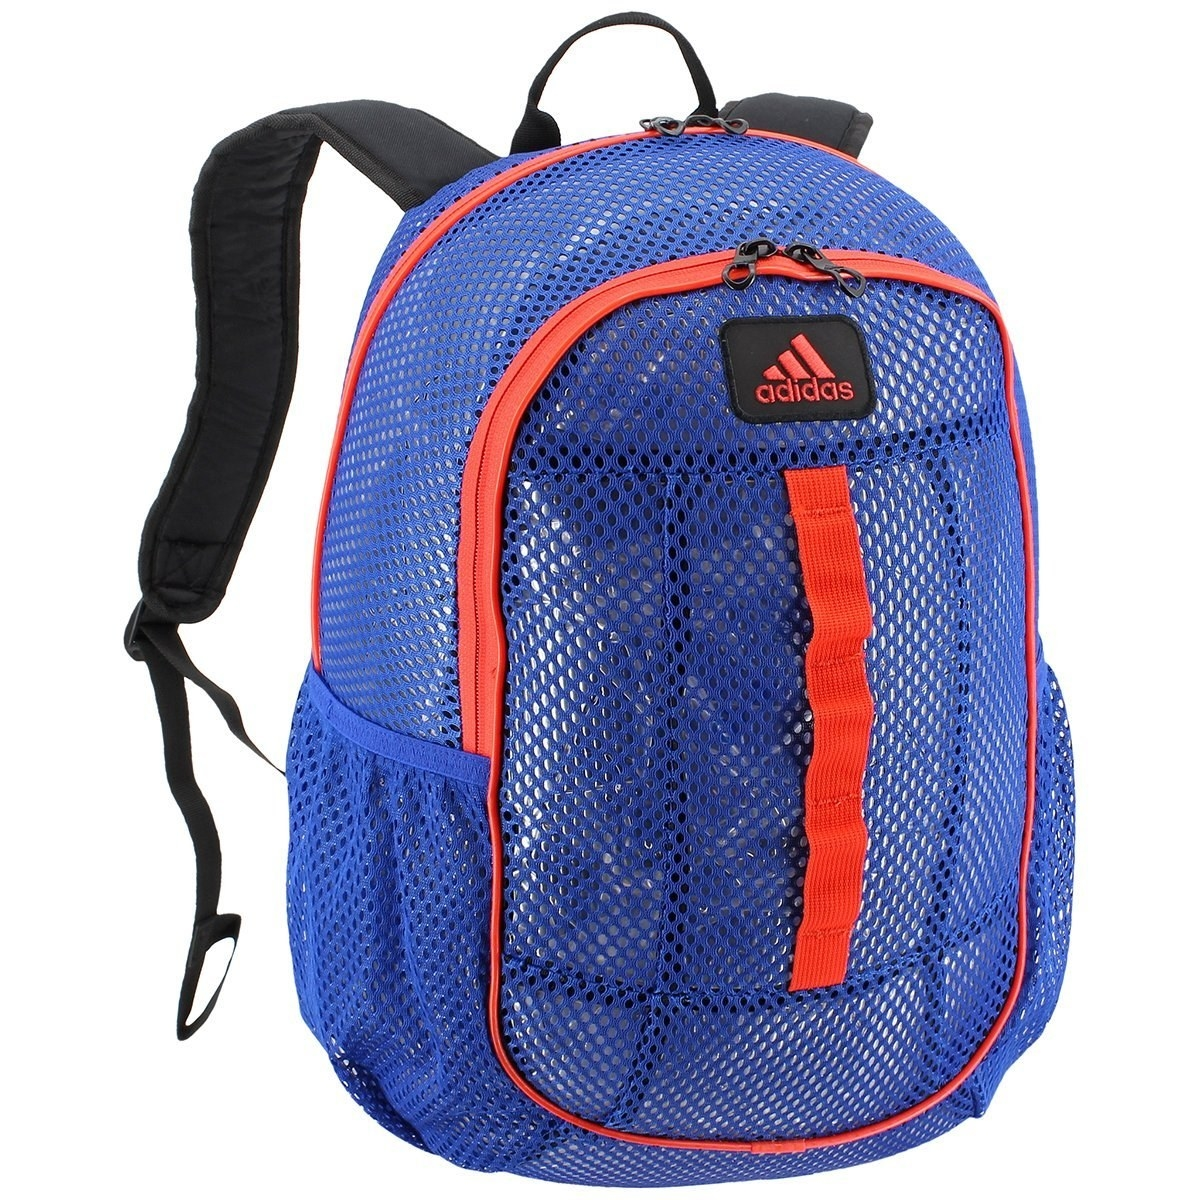 a5a7d5f1e1ac A surprisingly durable sporty-looking mesh Adidas backpack with a lifetime  warranty — so you know it s in it for the long run.